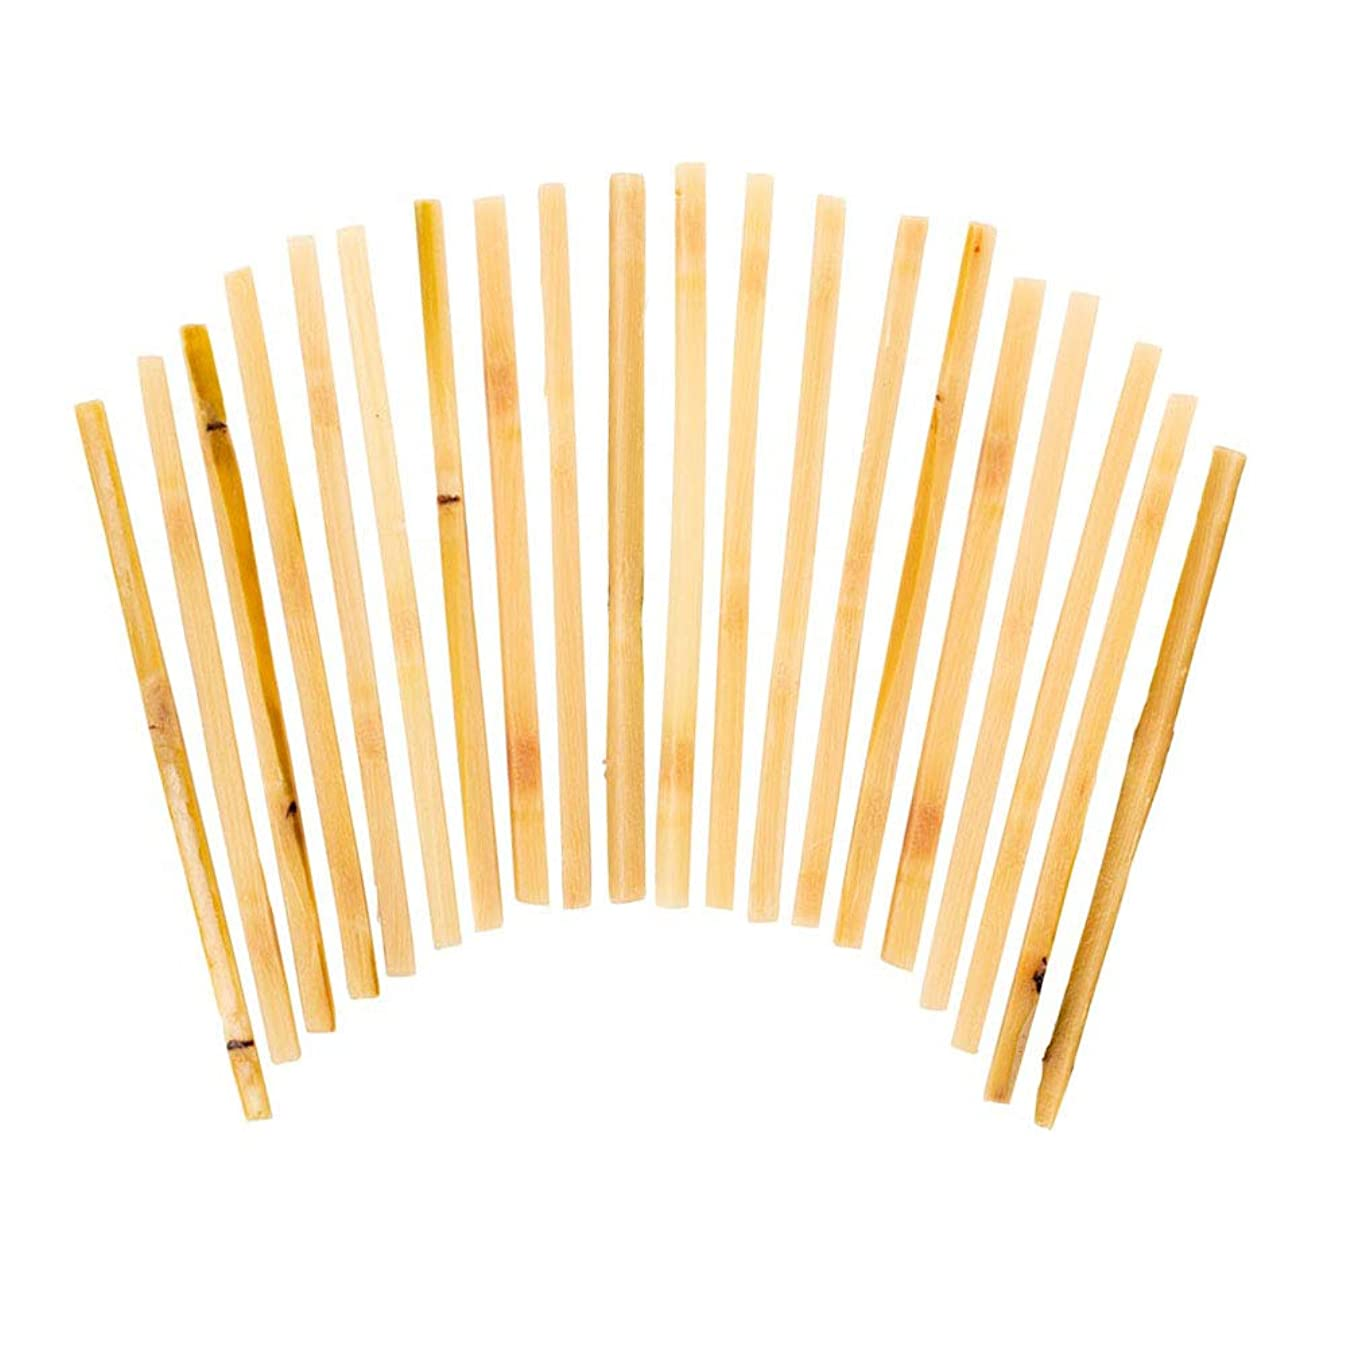 Raw Sugar Cane Swizzle Sticks - Pack of 20